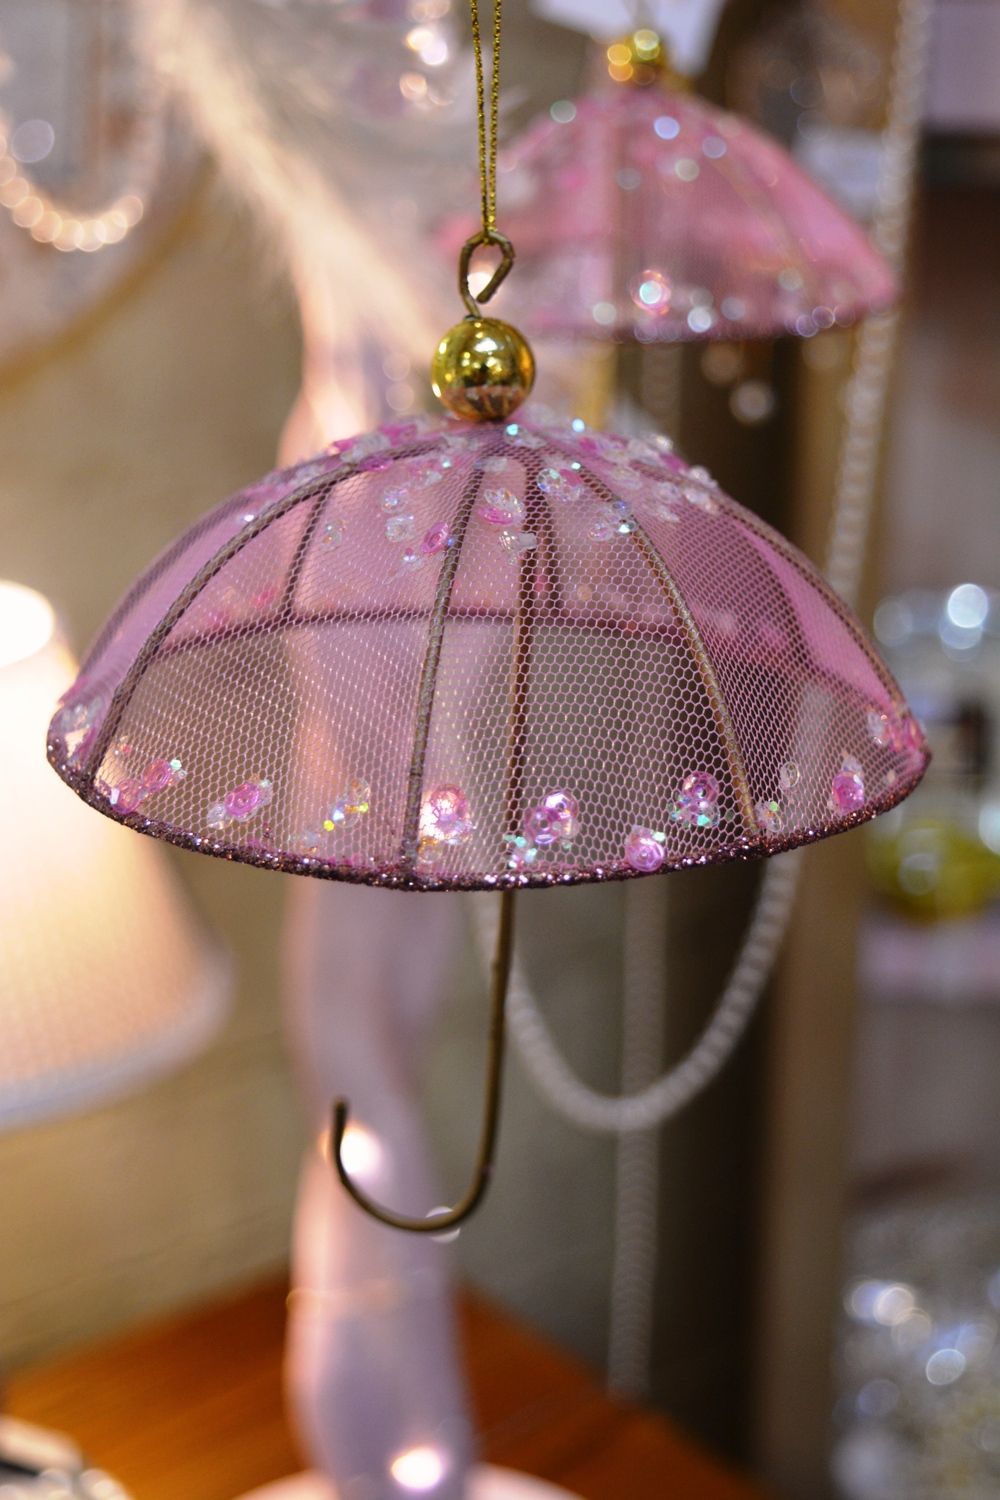 Pink Umbrella Decoration - €4.50